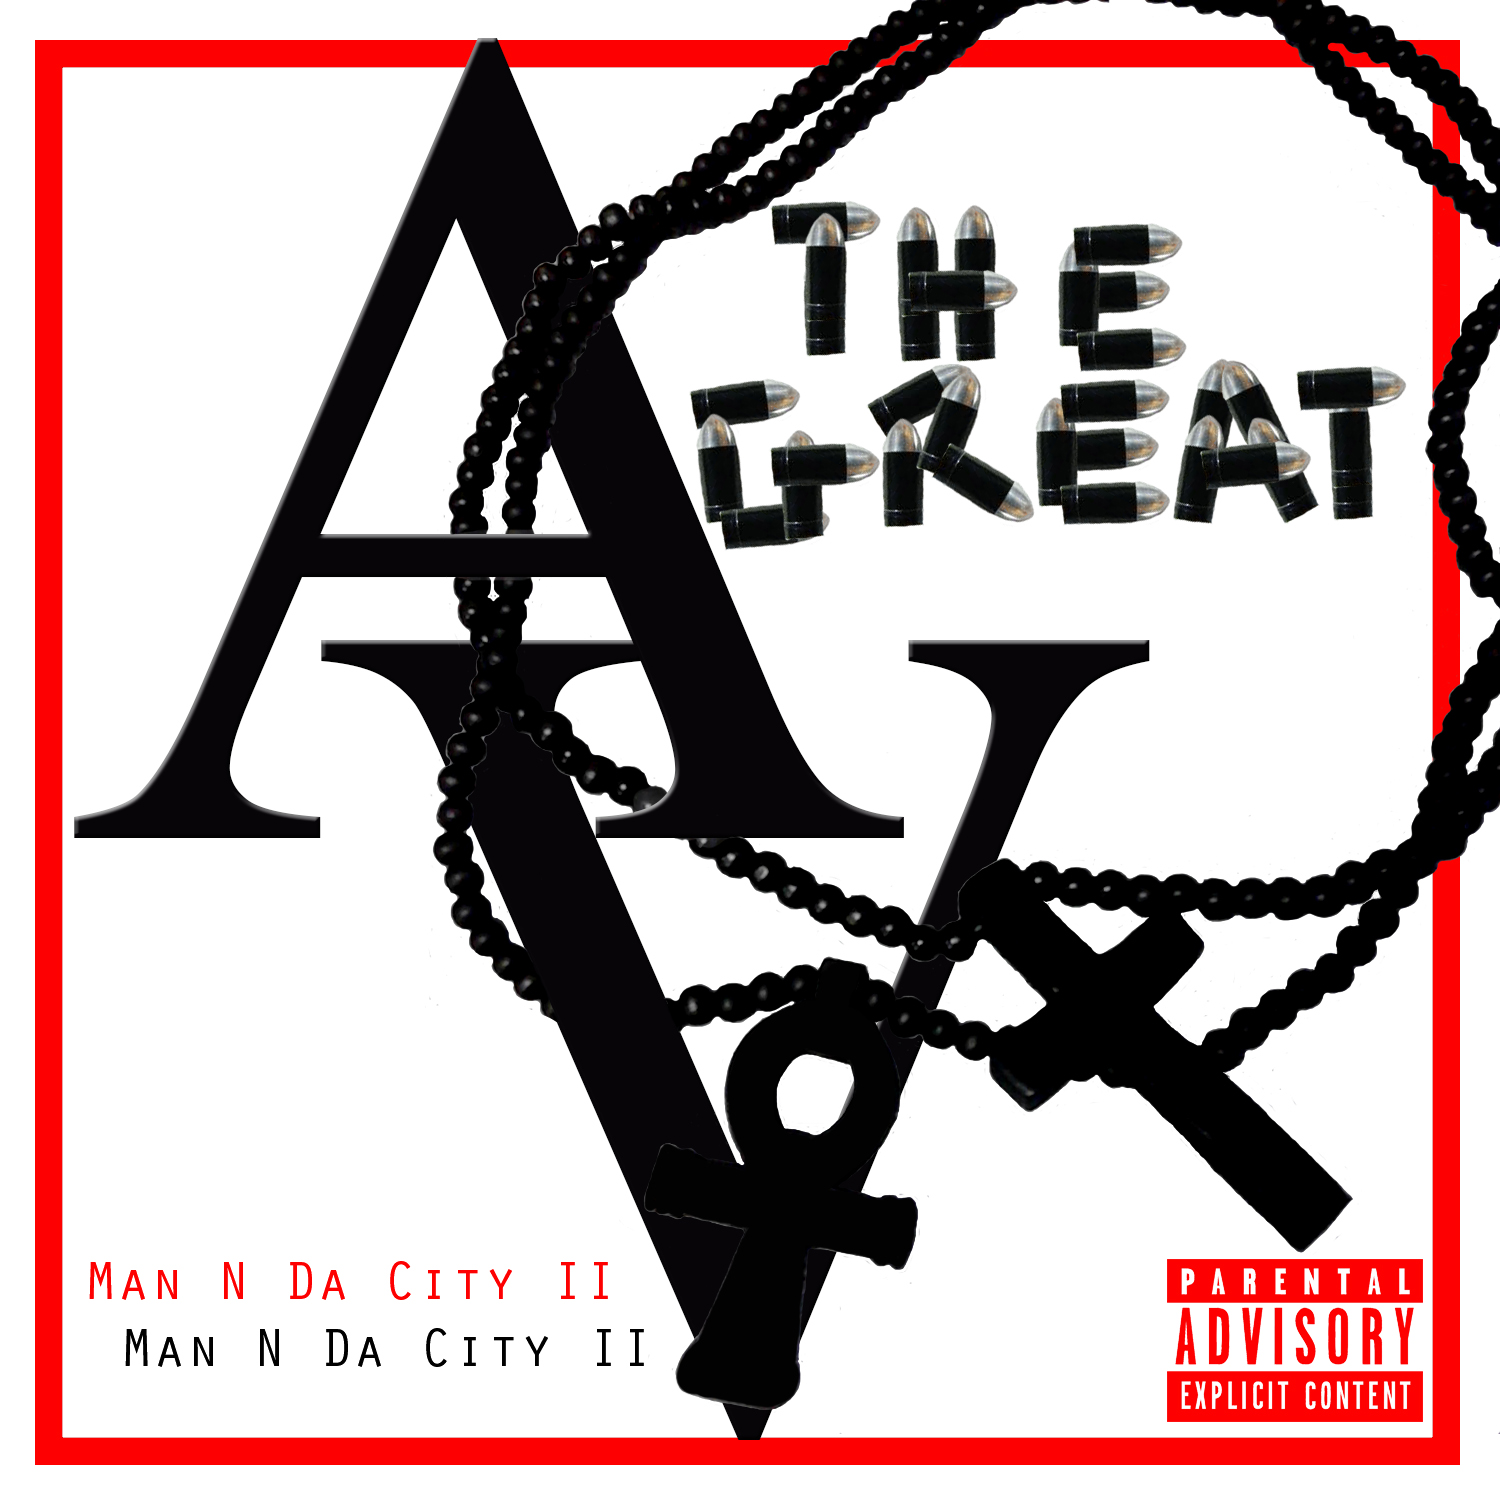 Man N Da City II